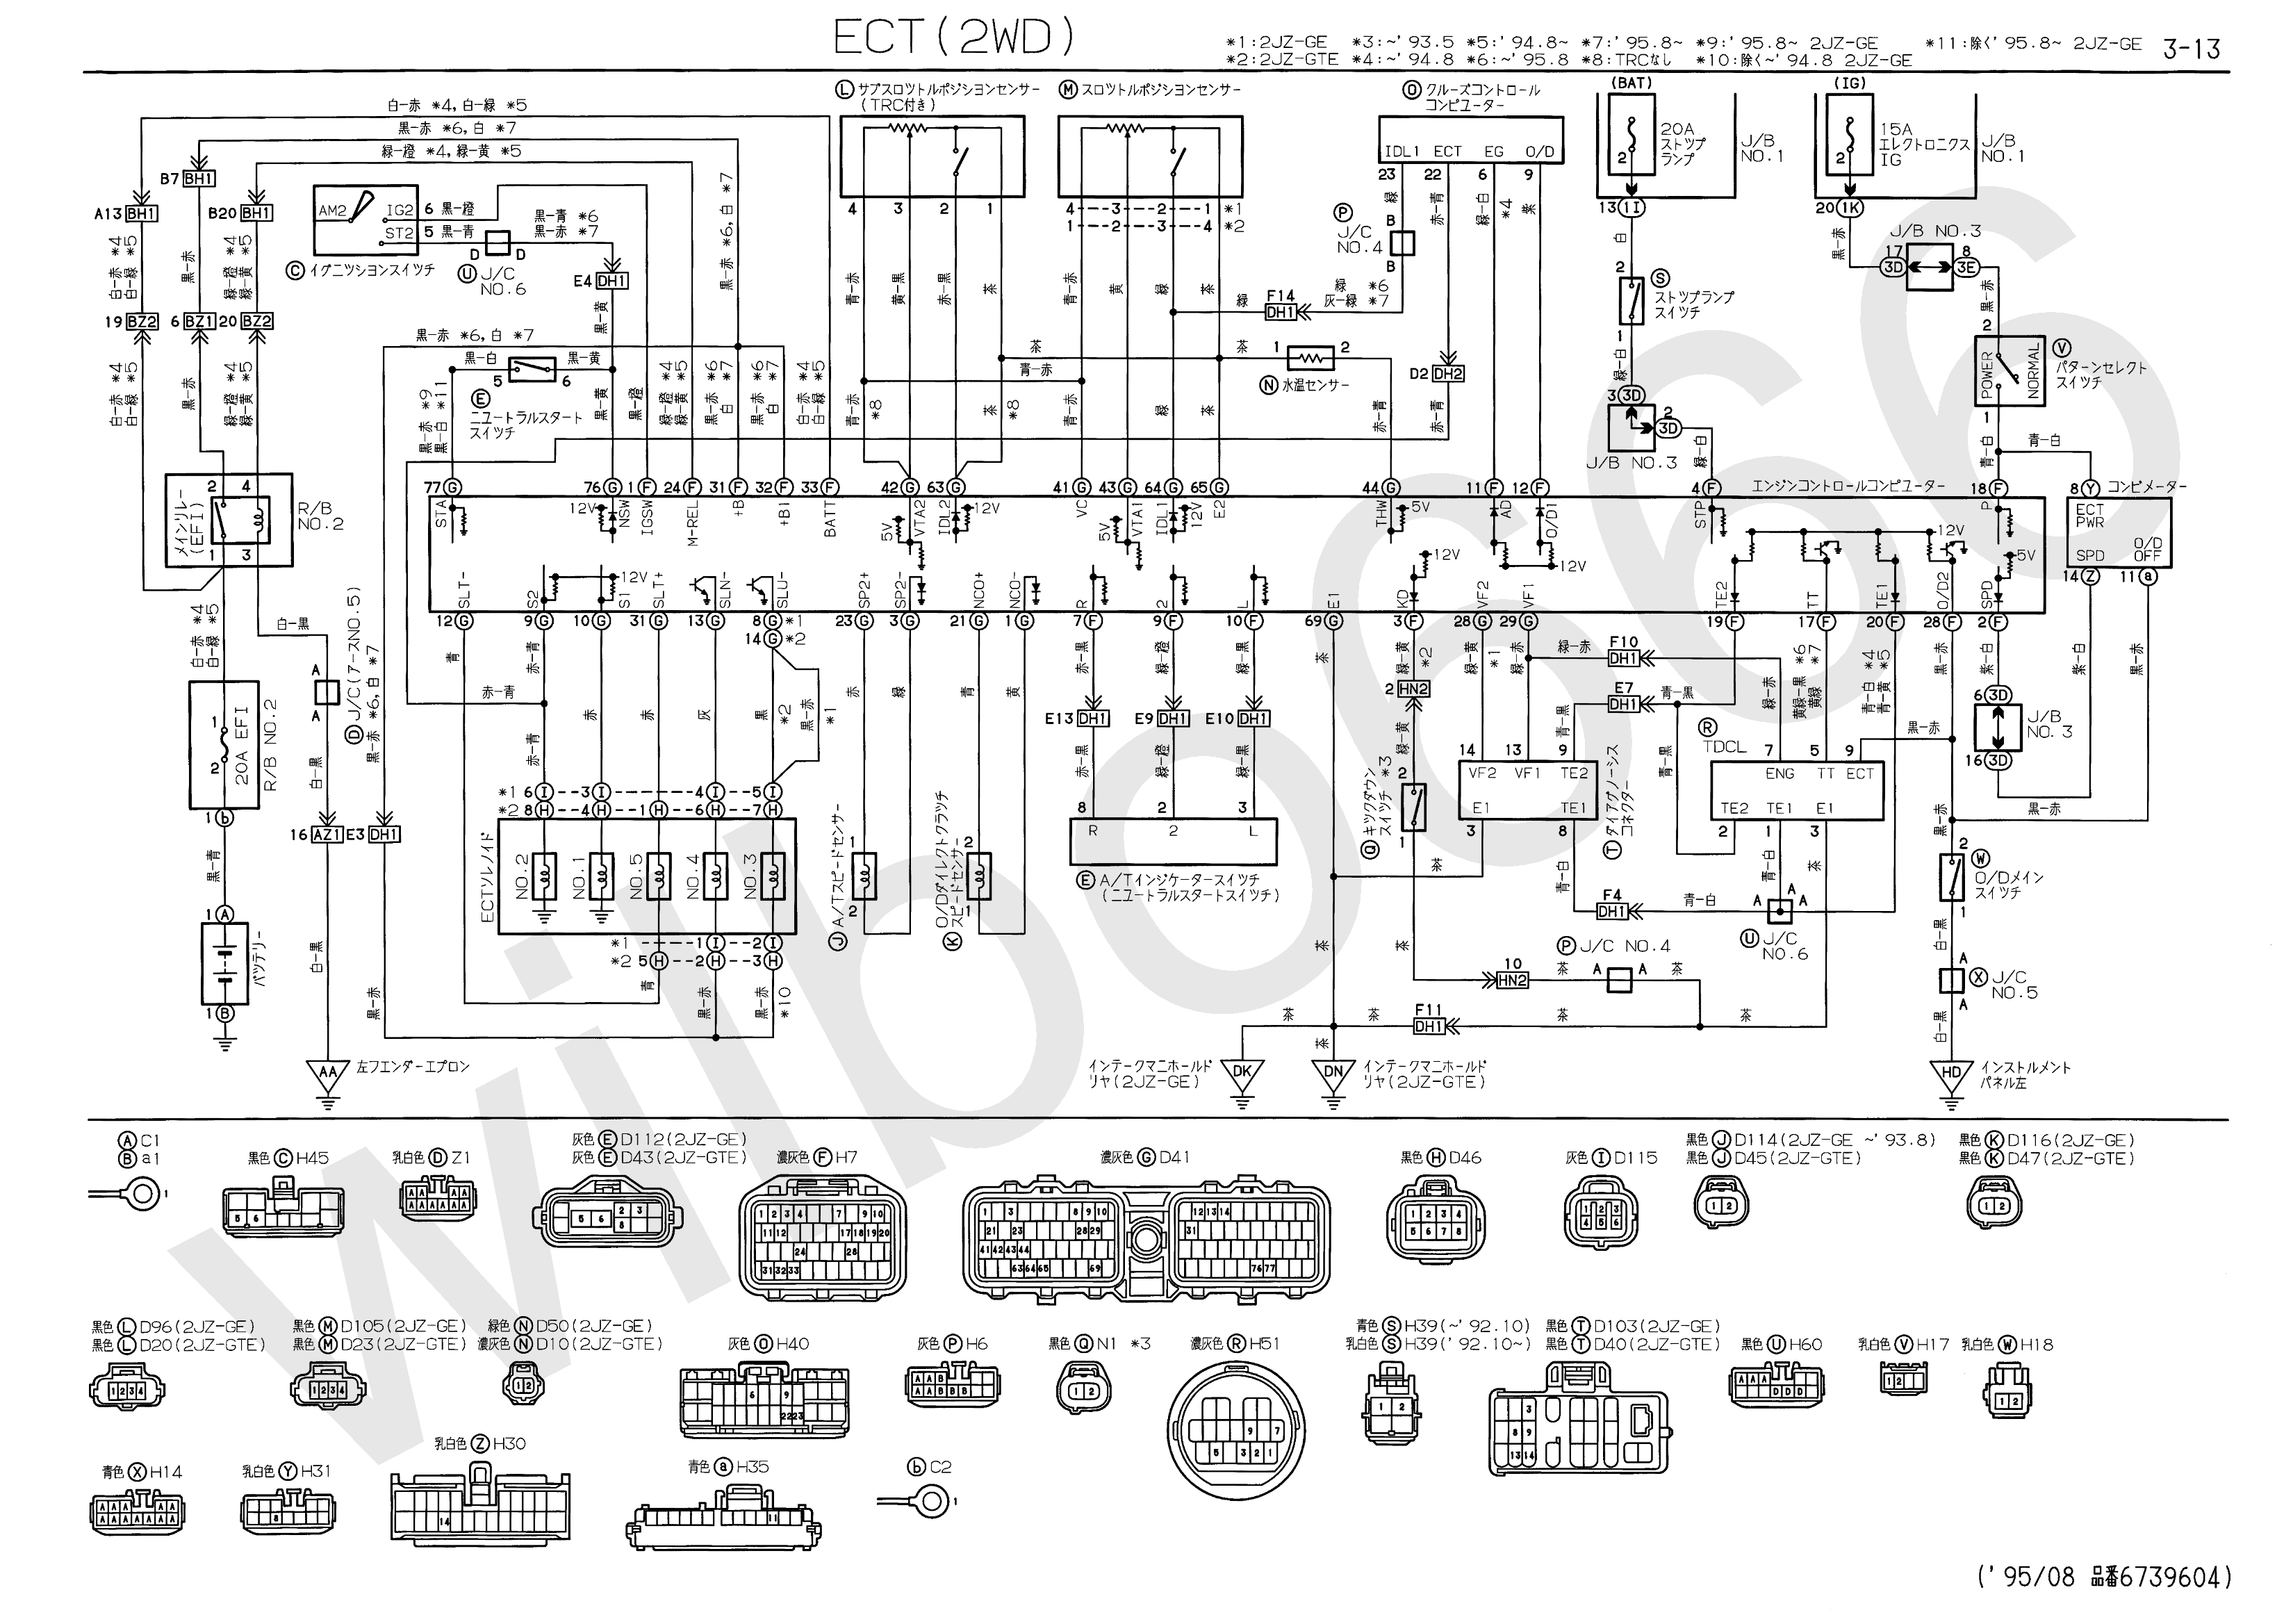 2005 Ford Ranger 3 0 Liter Spark Plug Wiring likewise Us Legends Wiring Diagram also Kc Fog Light Wiring Diagram besides DAEWOO Car Radio Wiring Connector in addition 1go3o 1966 Pontiac Gto Wires Going Starter. on mazda 3 electrical schematic